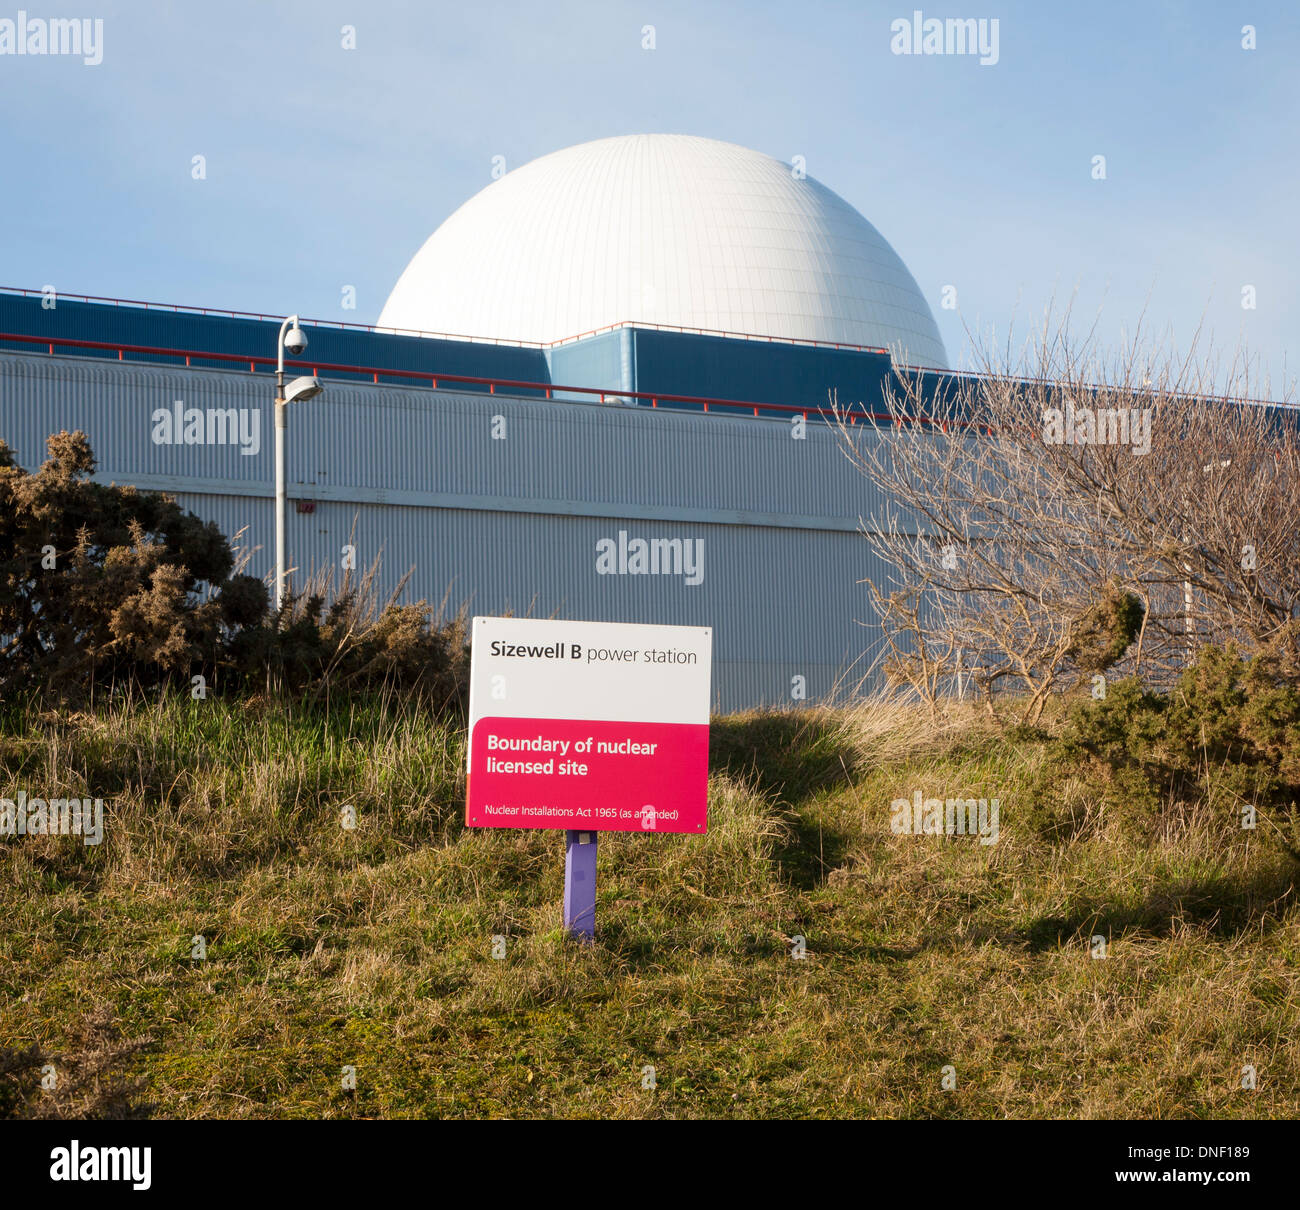 White dome of PWR Sizewell B nuclear power station near Leiston, Suffolk, England - Stock Image